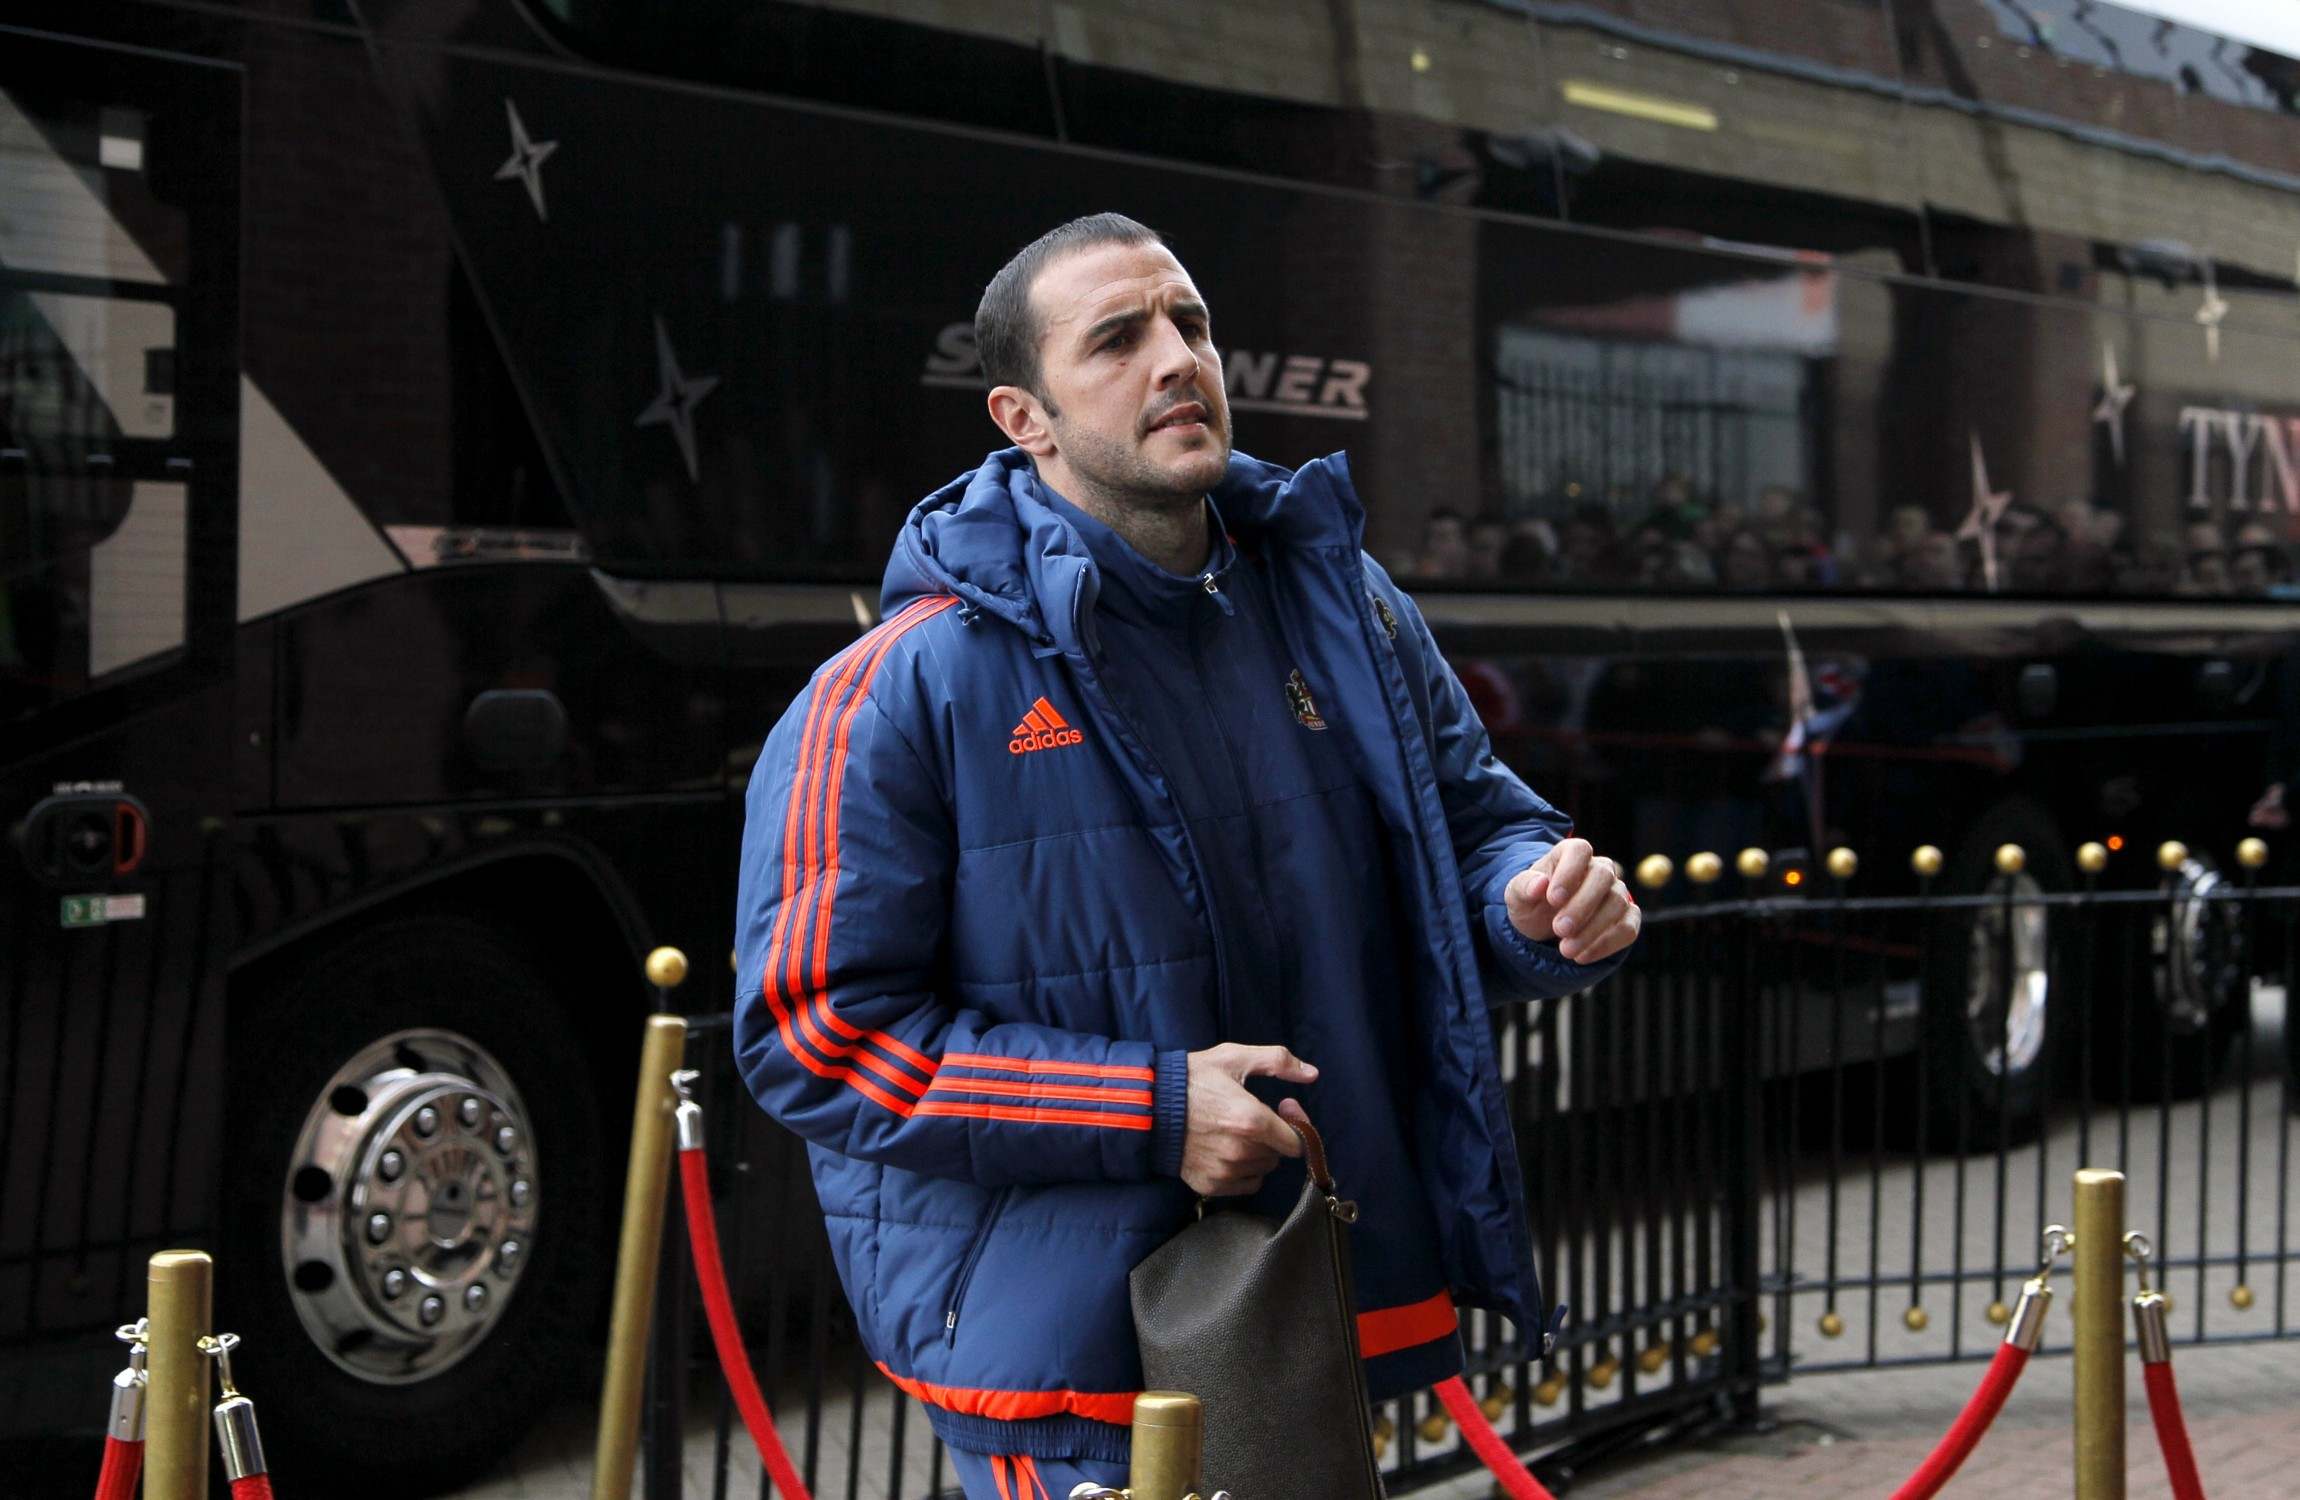 John O'Shea's Sunderland future up in the air